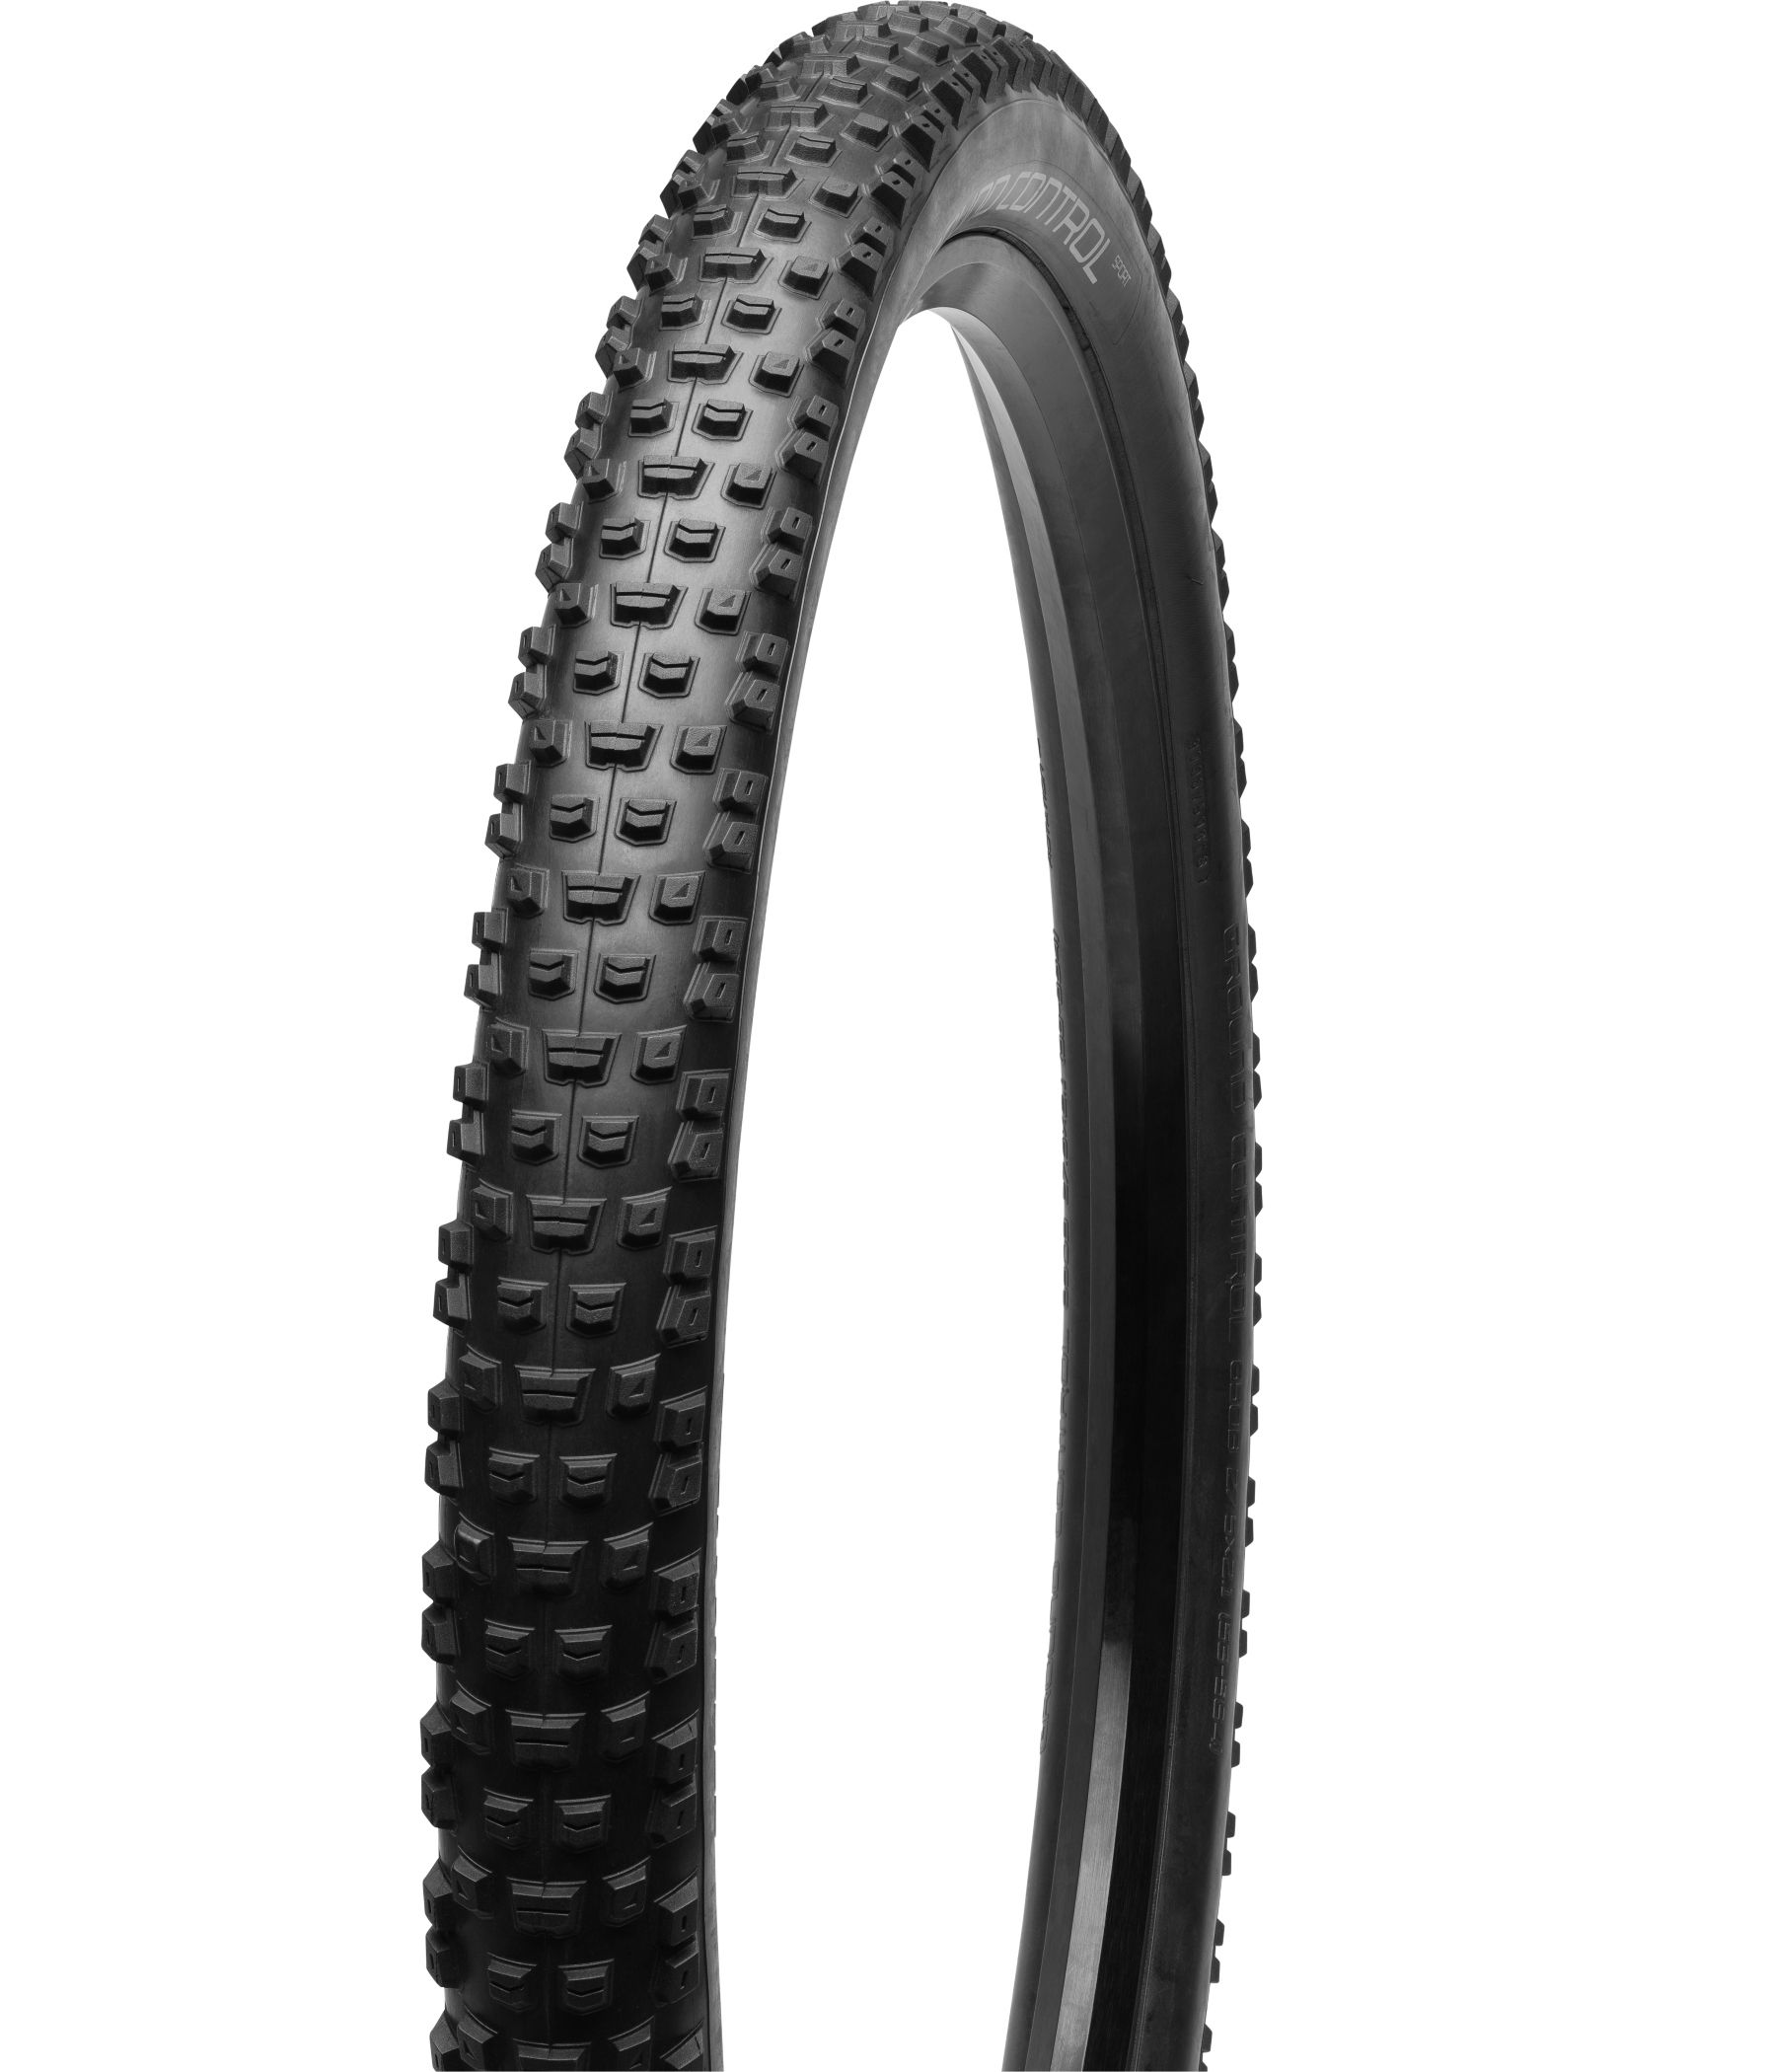 Specialized Ground Control Sport Mtb Tyre 650b X 2.1 | Tyres